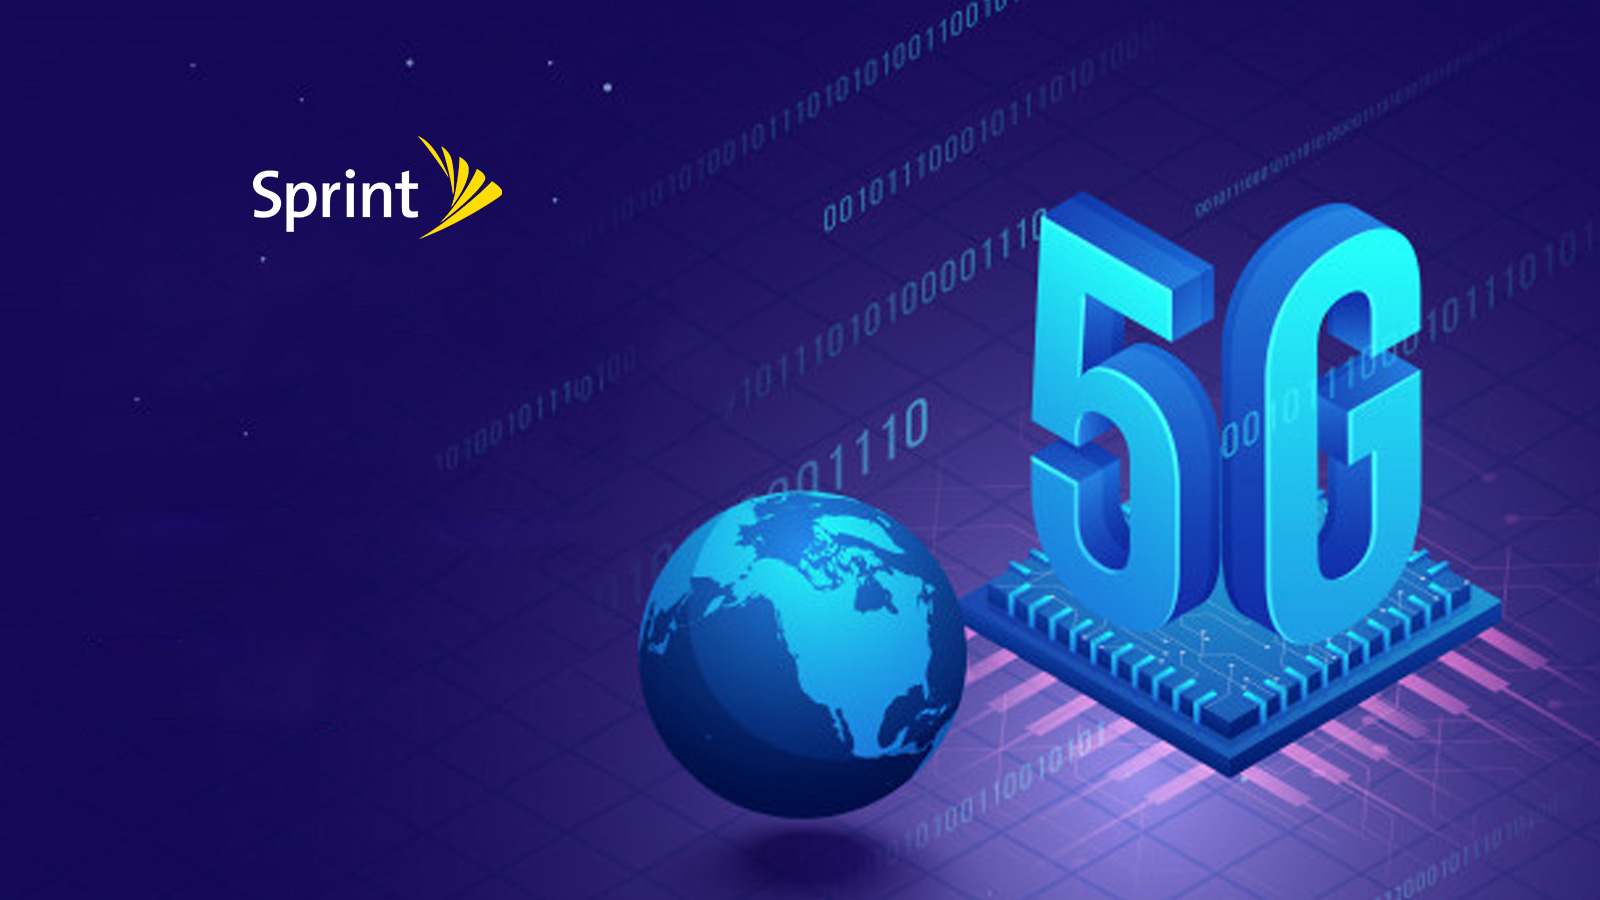 Sprint to Provide 5G Wireless Services for Google Fi